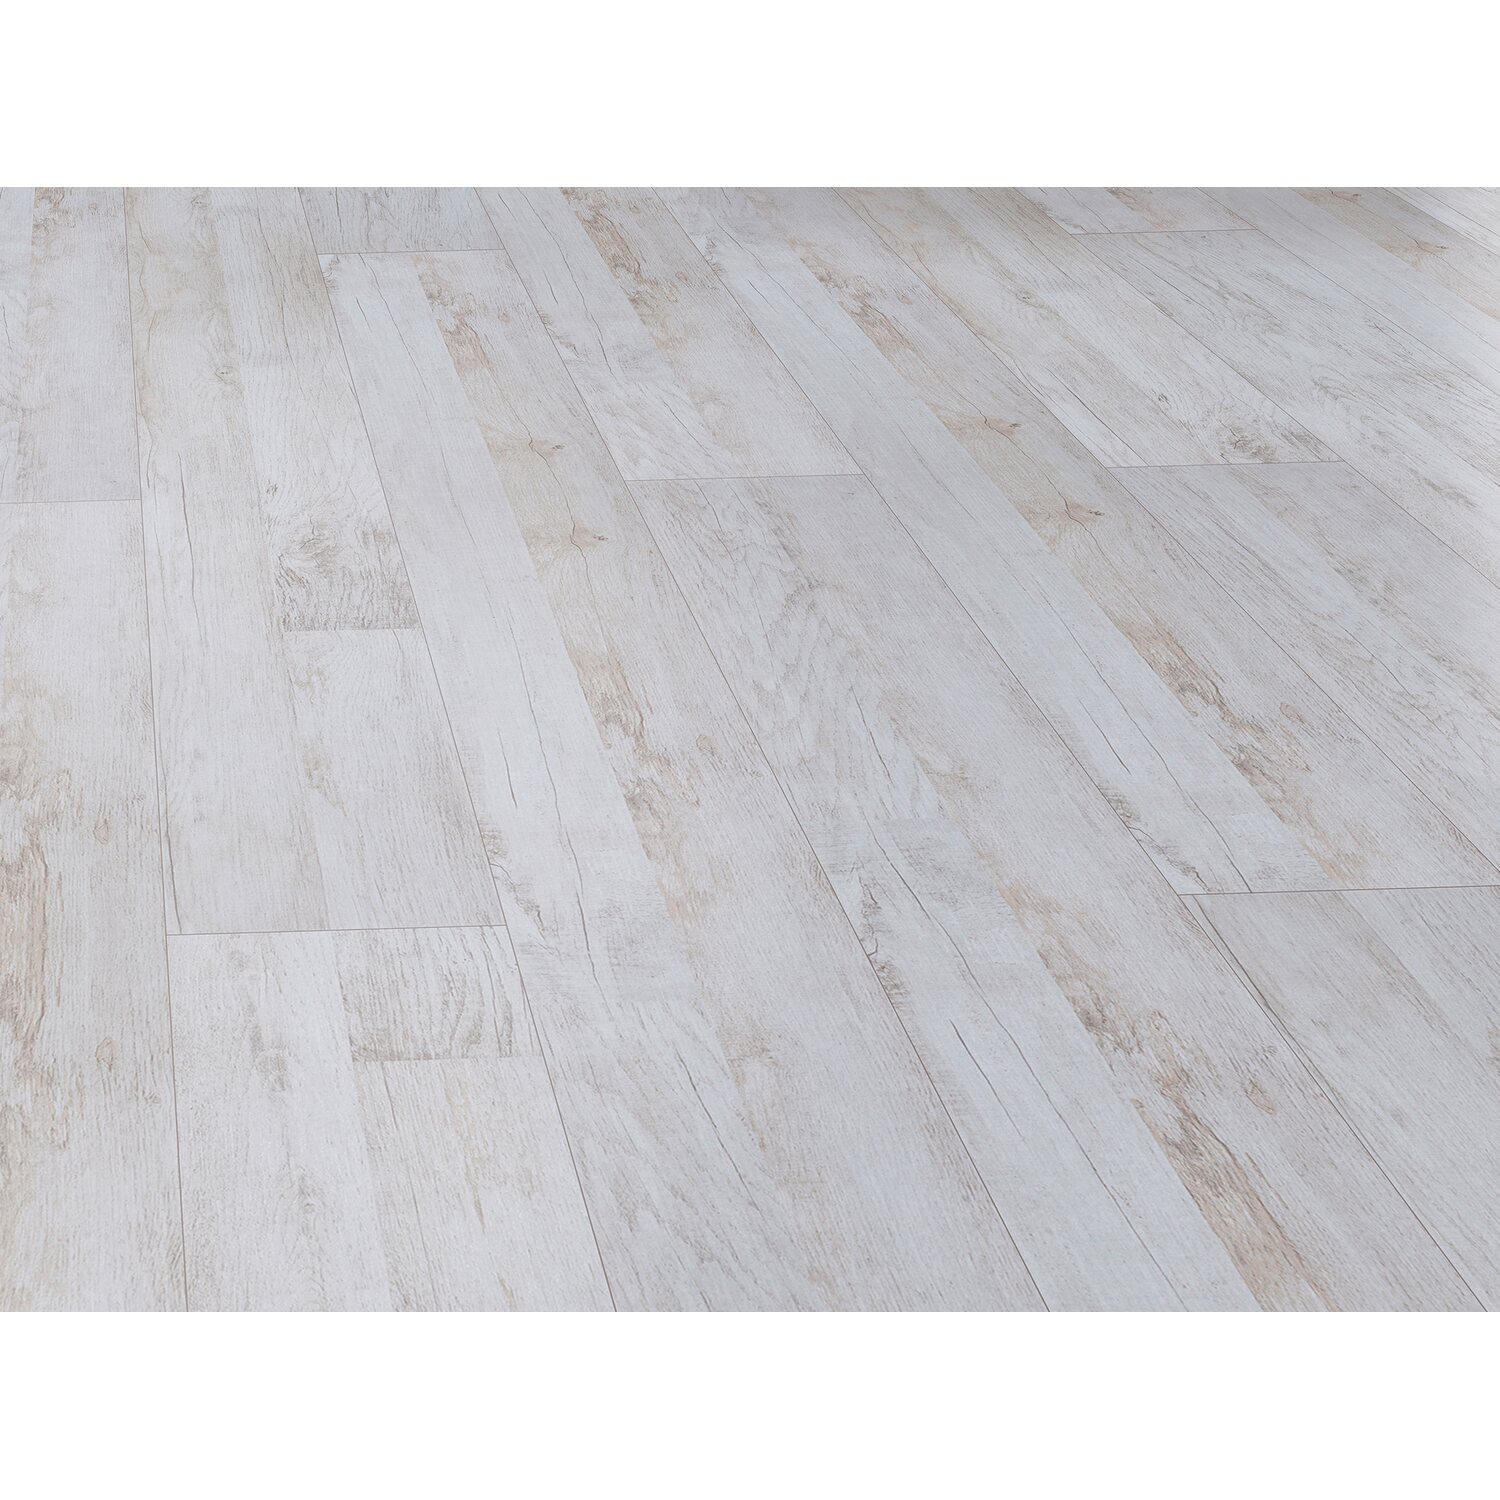 Obi pavimento in laminato comfort historic pine acquista for Finestre pvc obi